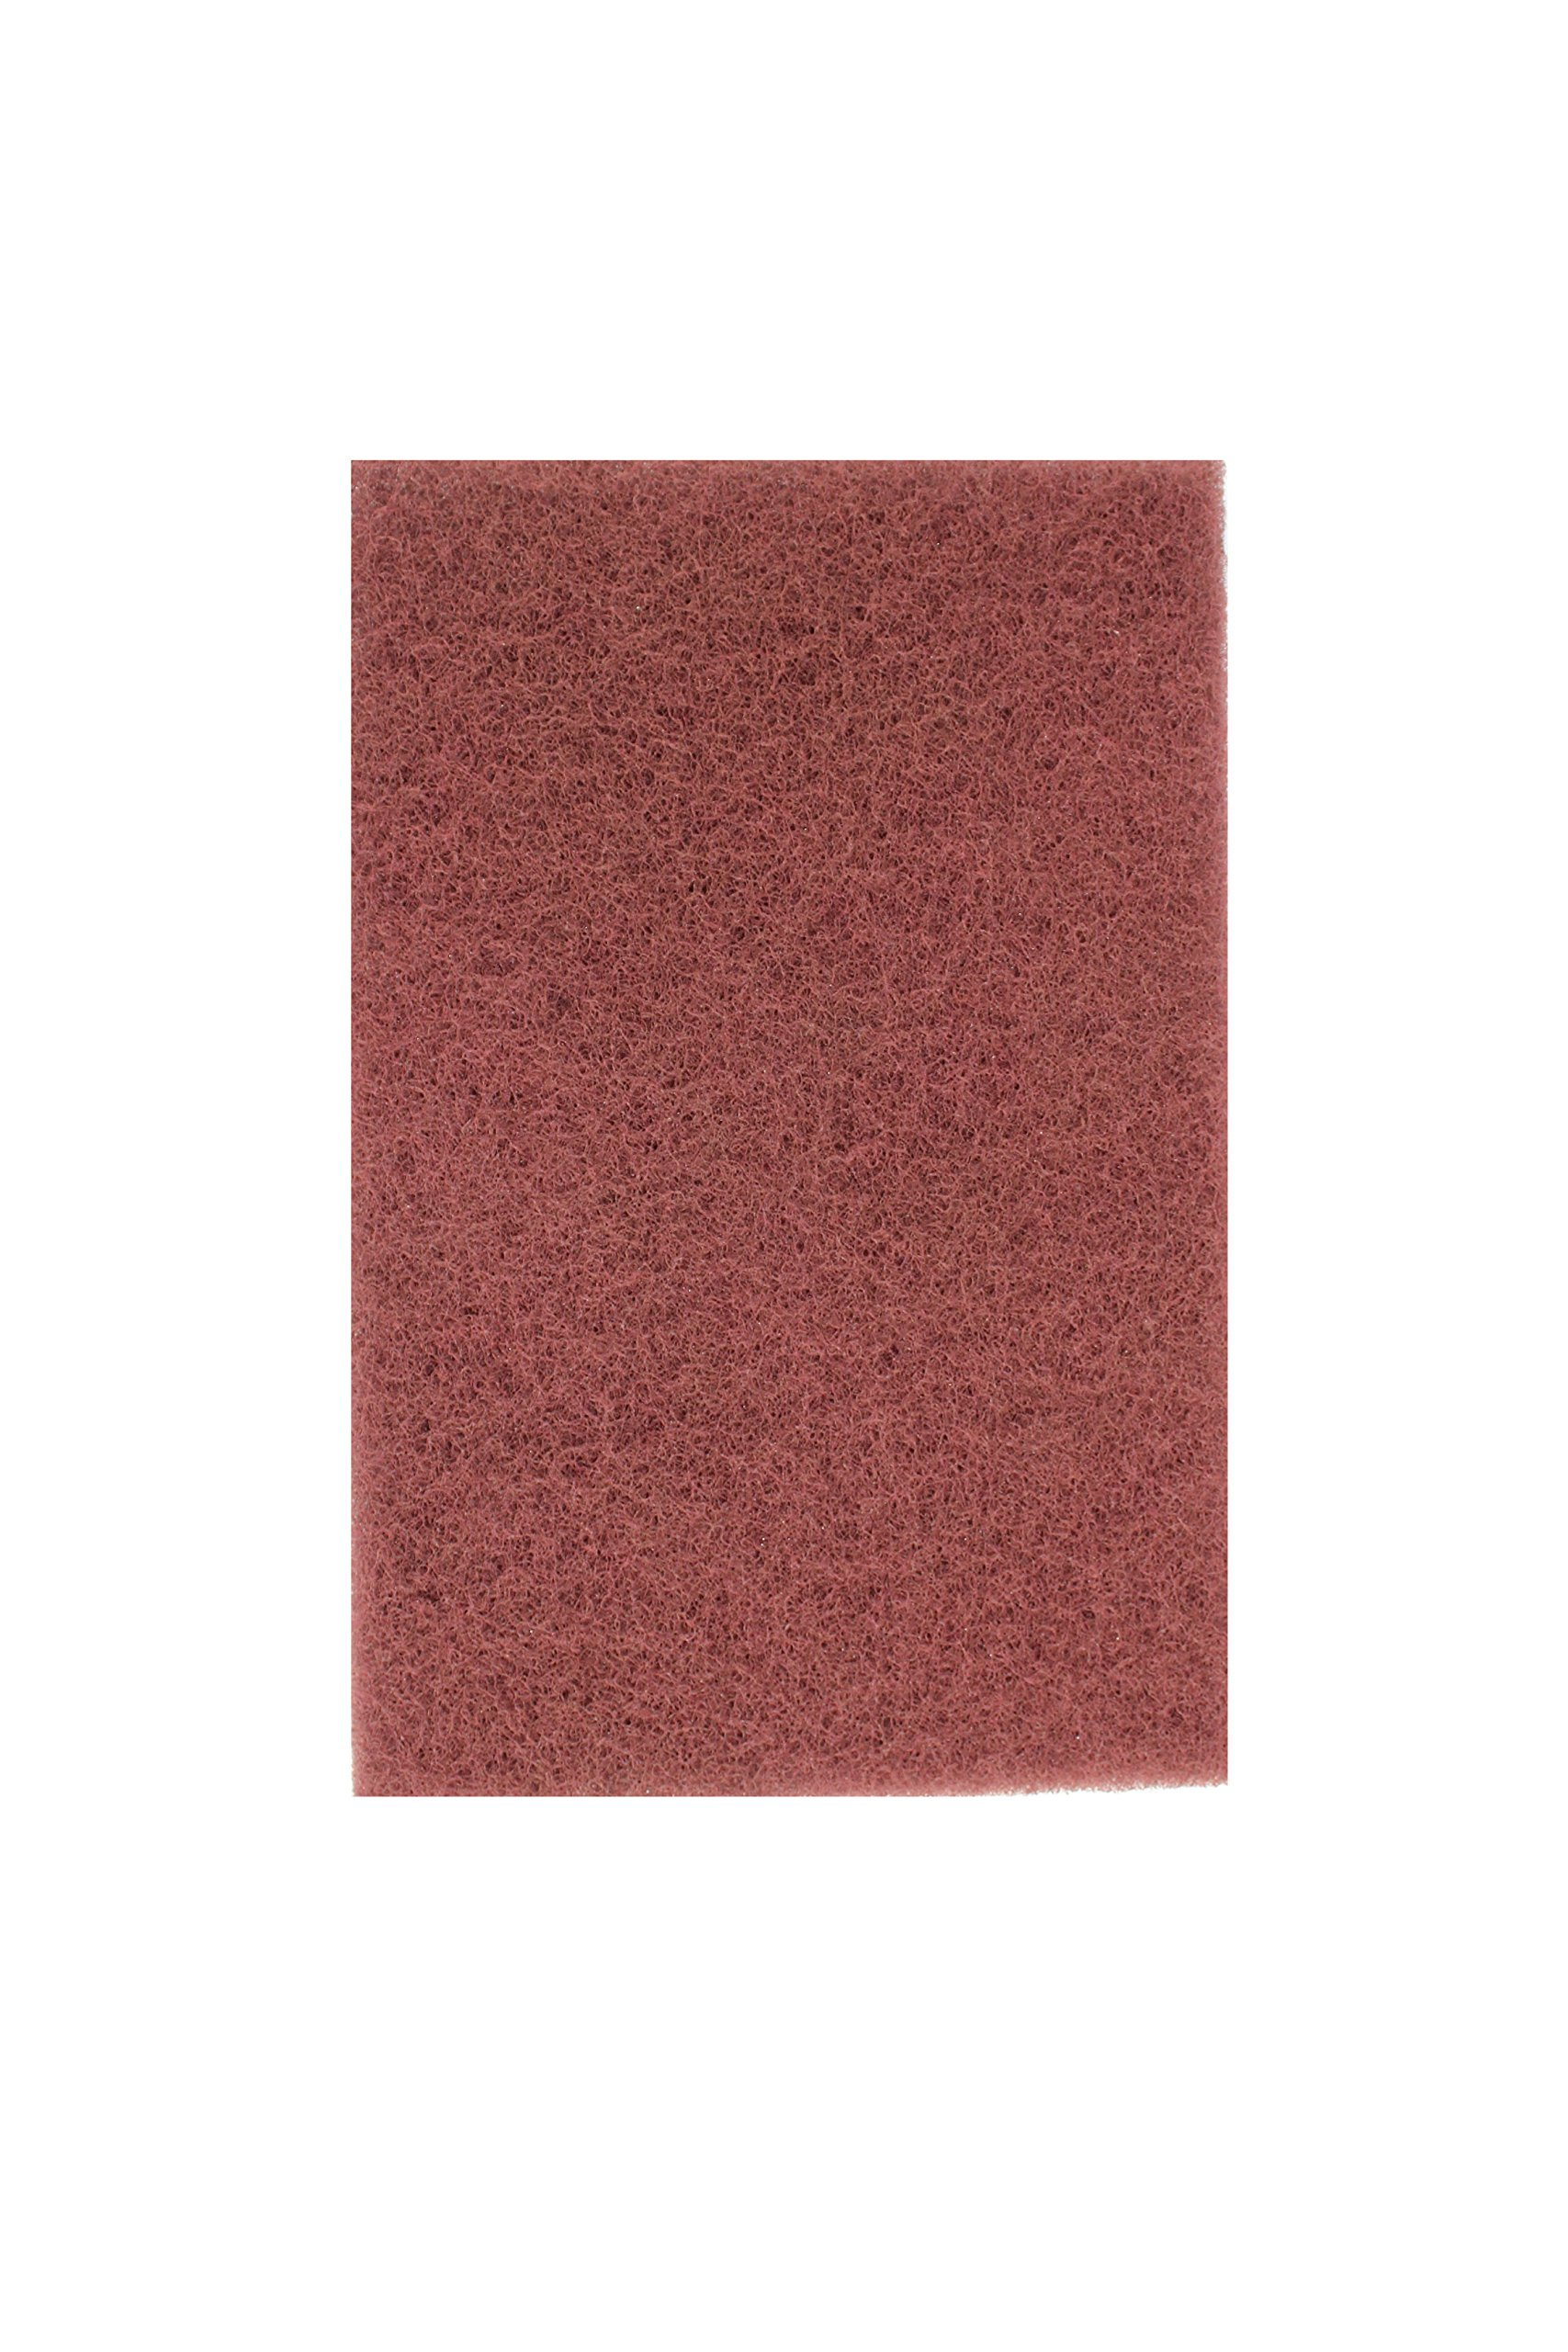 Sunmight 80100 1 Pack Maroon 6'' x 9'' Scuff Pad (Very Fine)